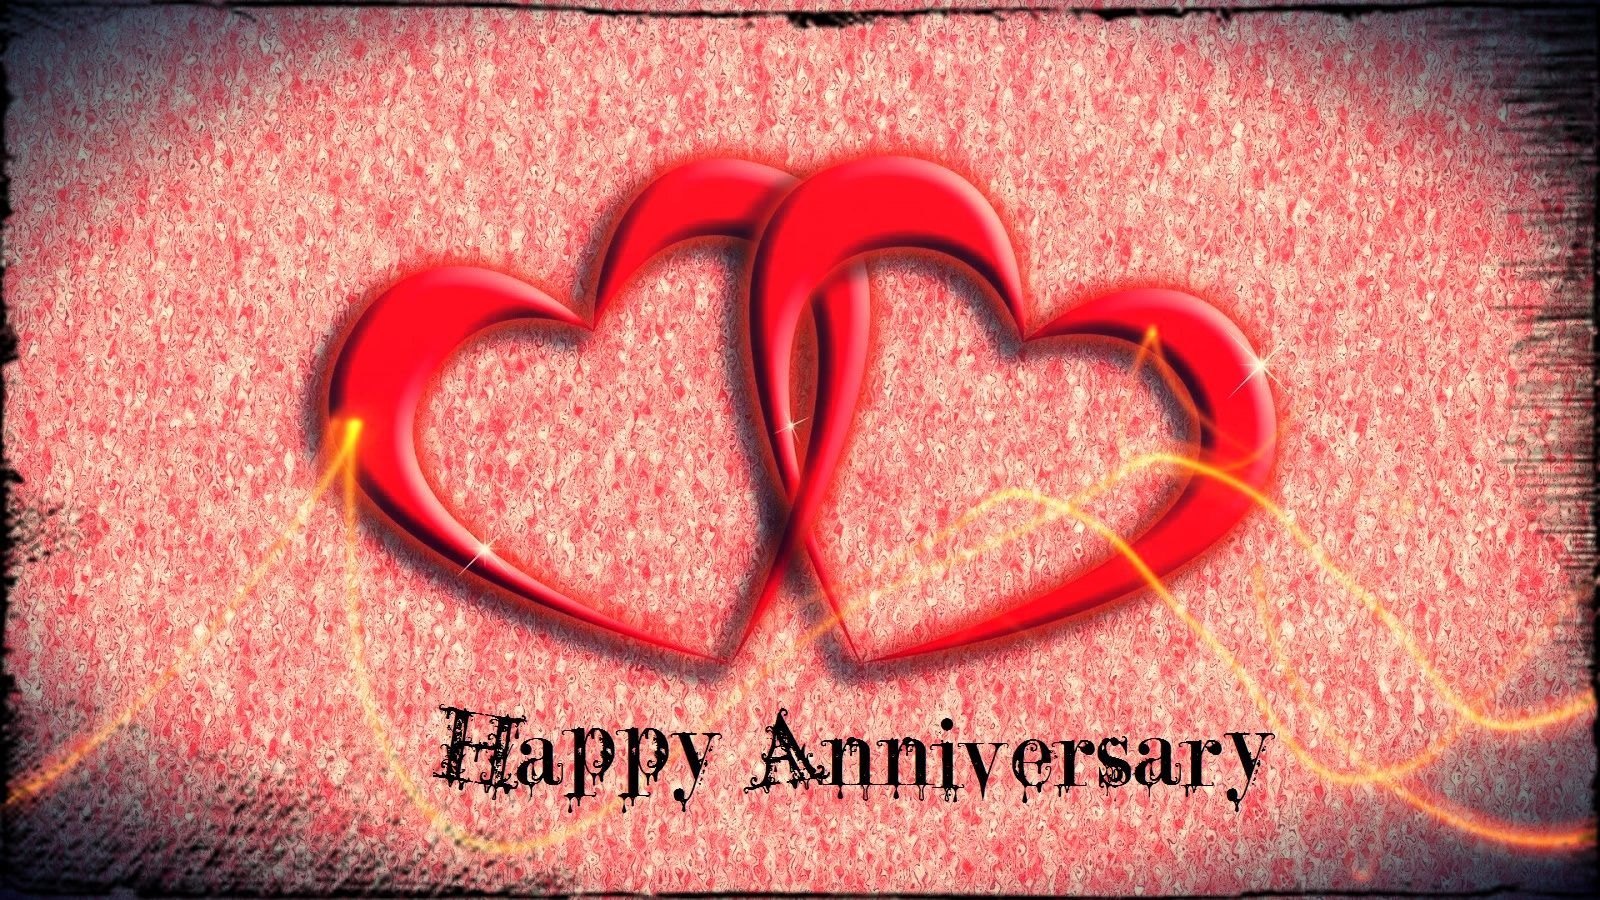 Happy anniversary greetings for husband wife or couple famous